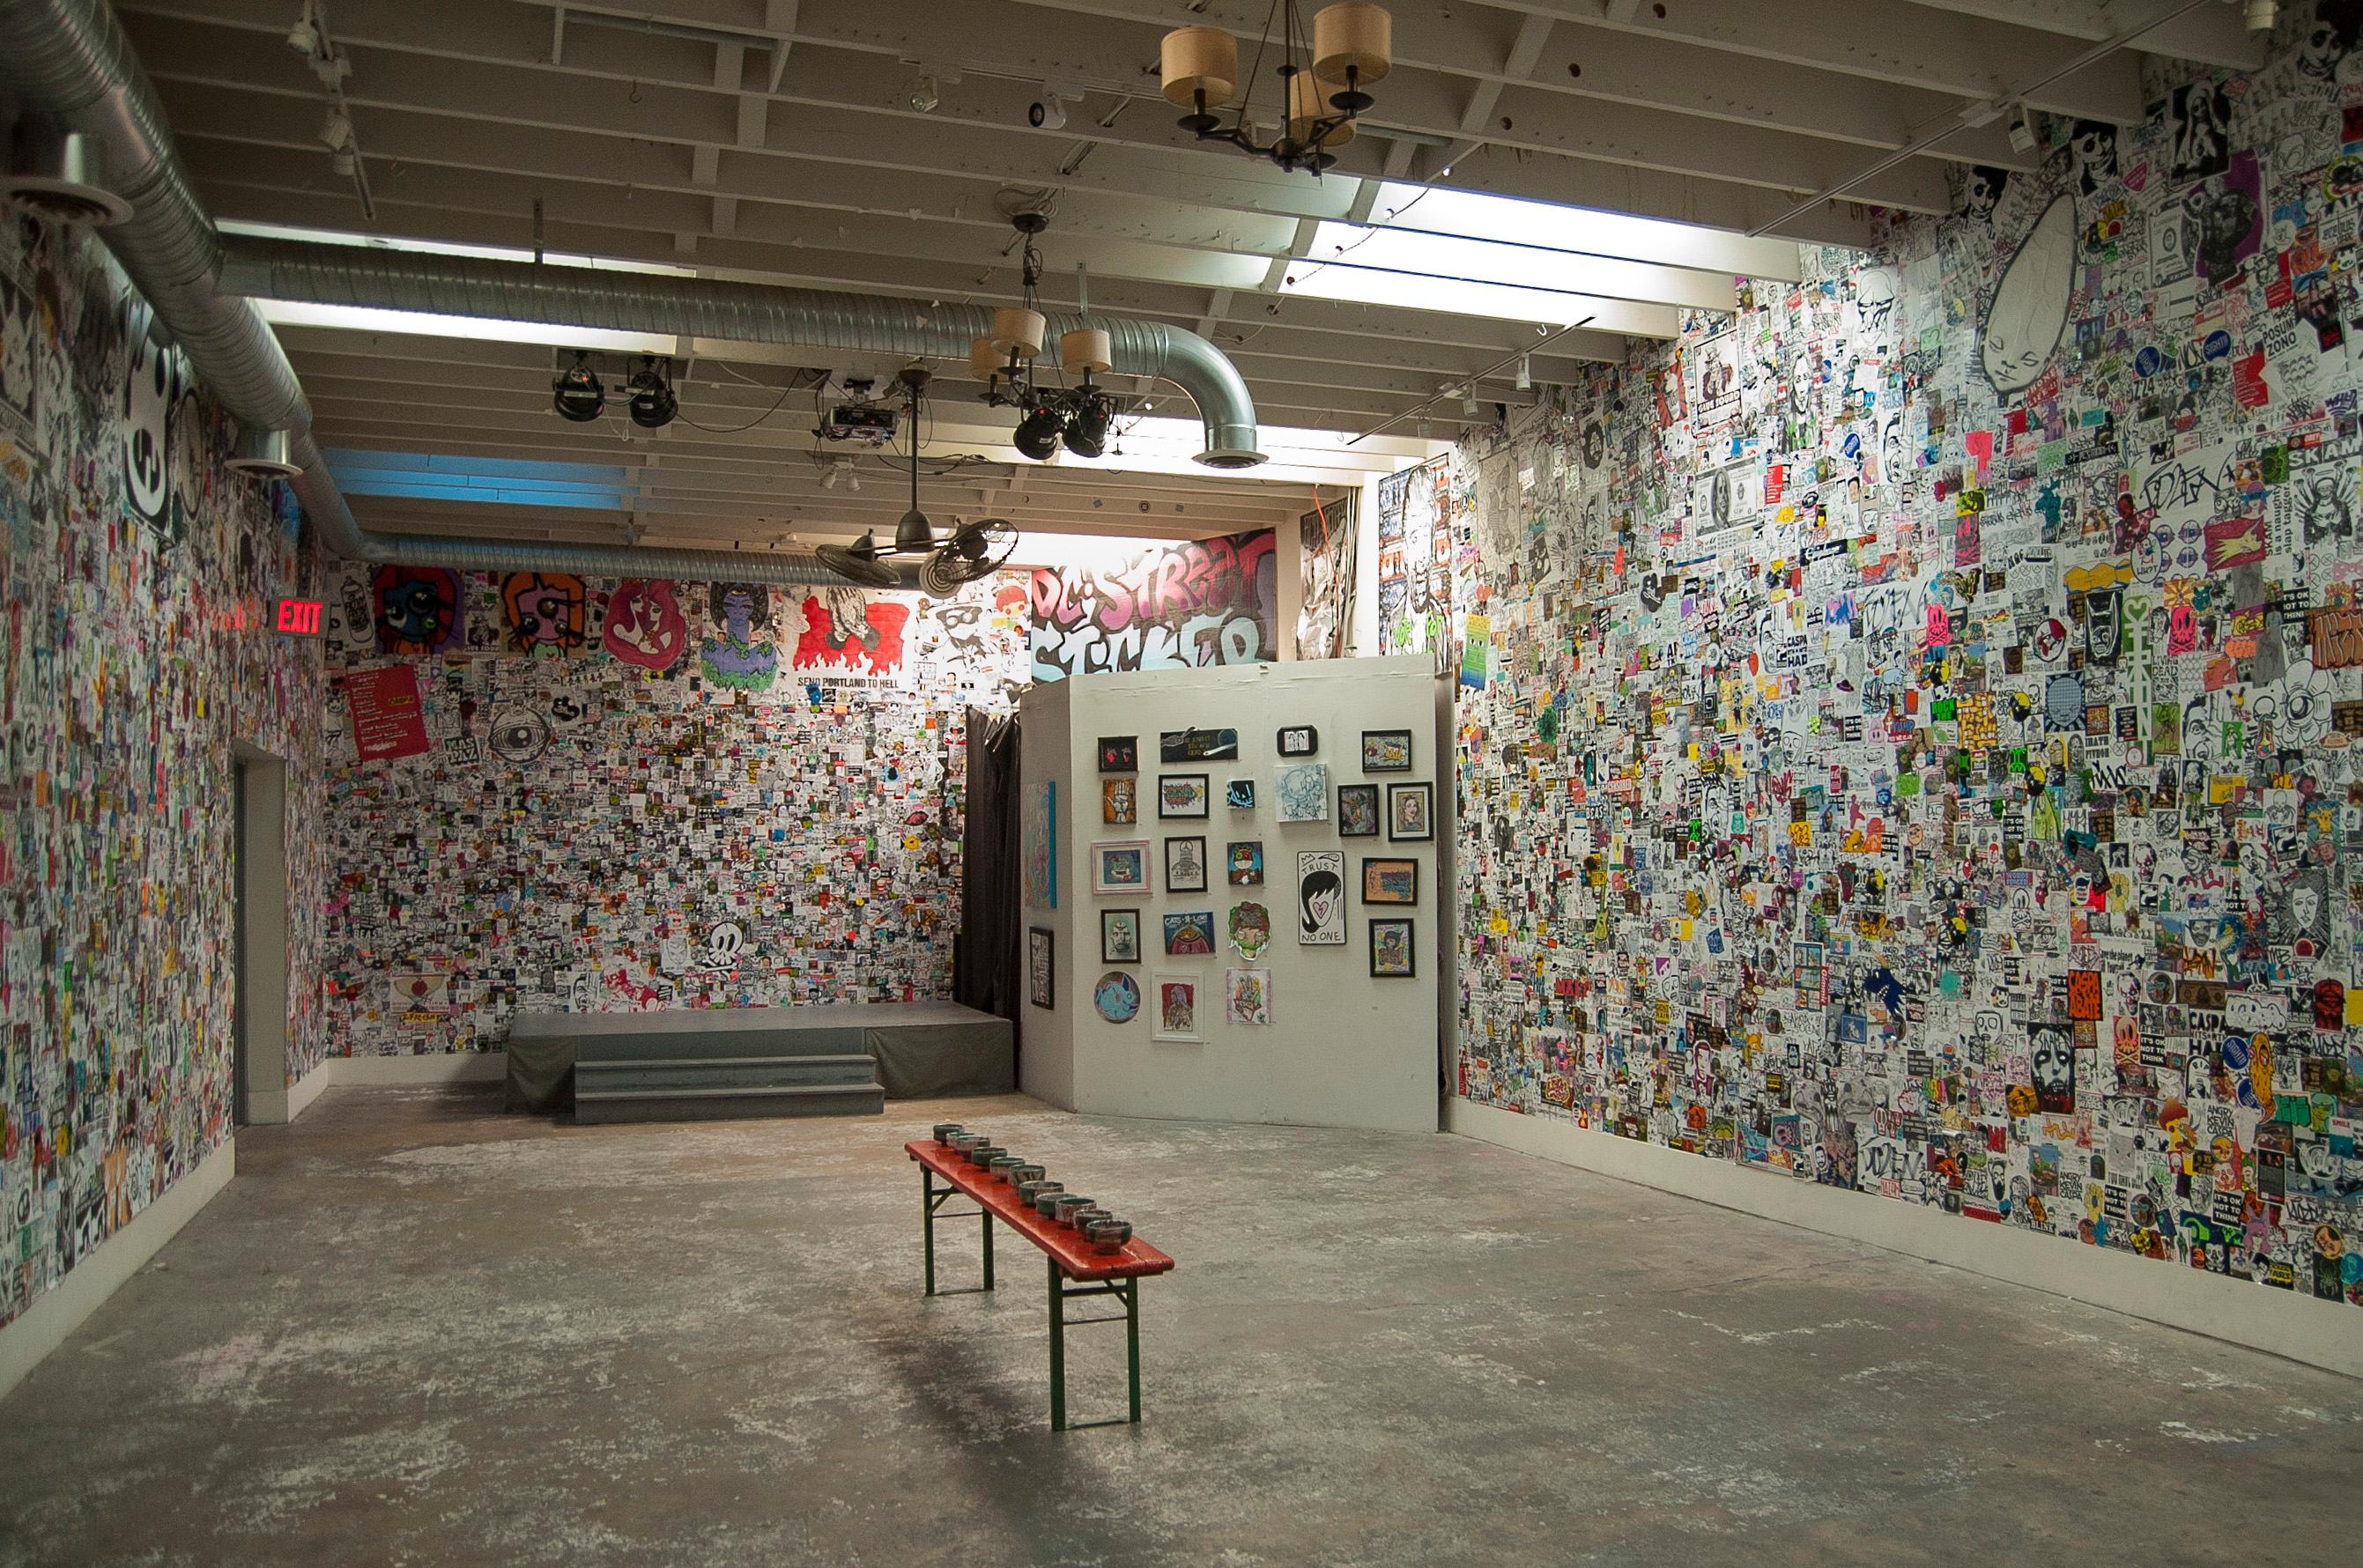 { }Once he had the idea to fill an entire gallery with stickers, it took about 12-18 months to convince Alex Goldstein, the owner of The Fridge, to give him a chance. (Image: Nikkia Redd Photography)